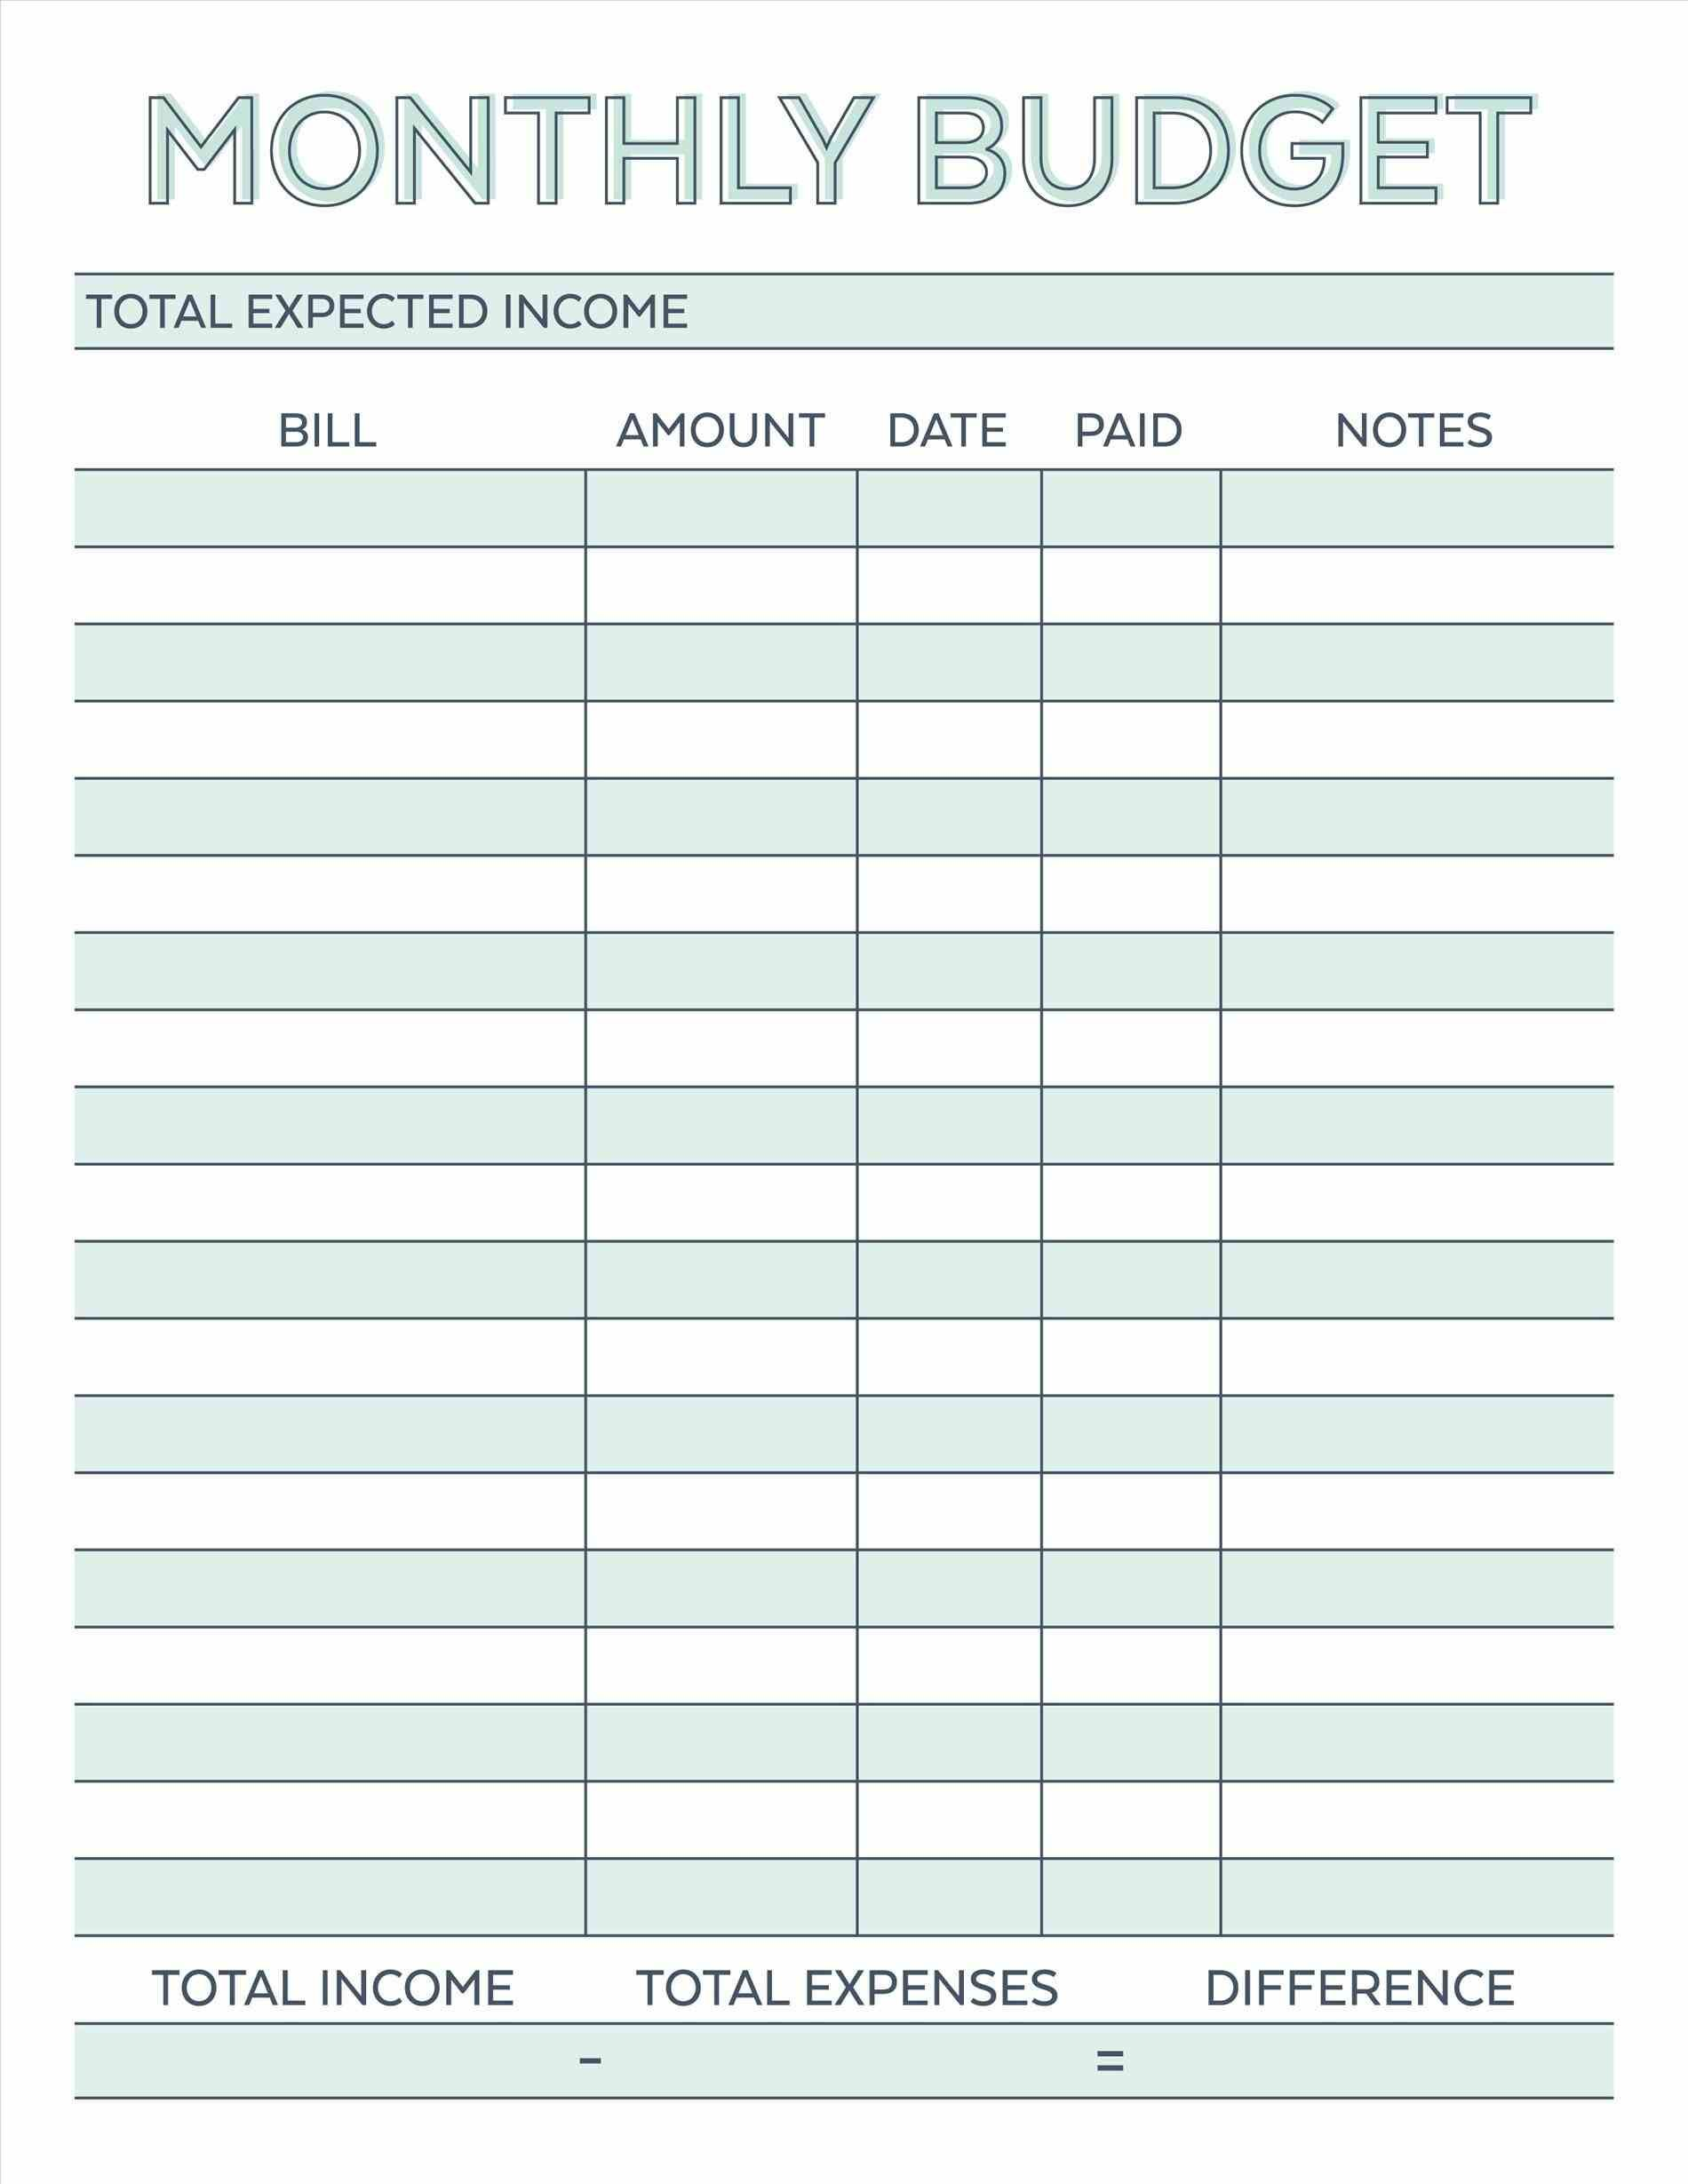 Budget Planner planner worksheet monthly bills template ...